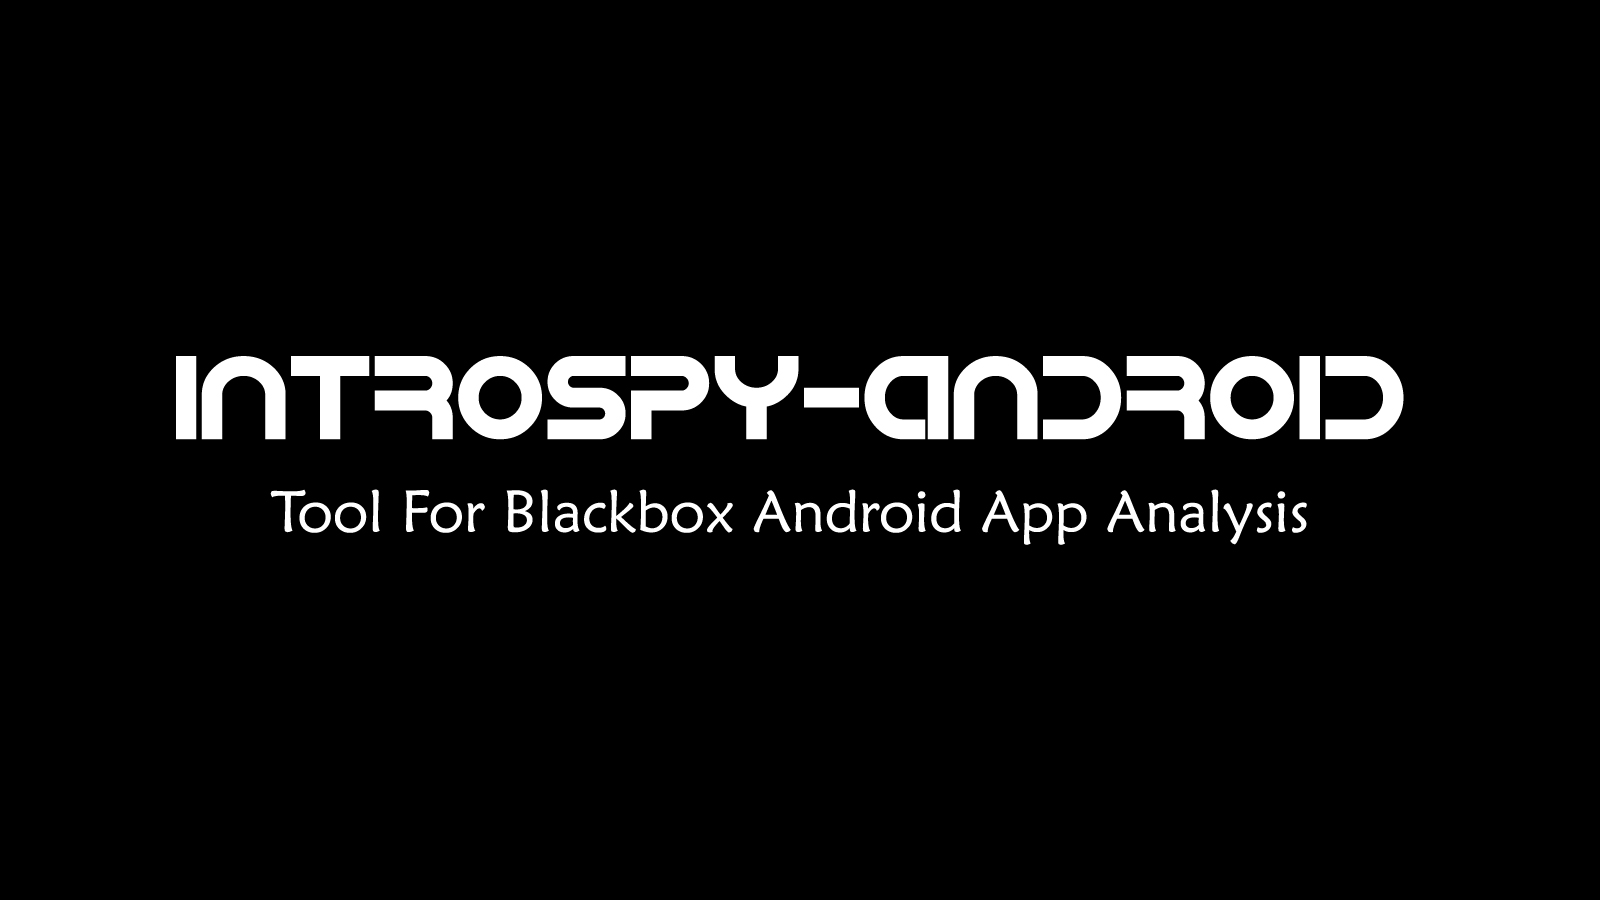 Introspy-Android - Tool For Blackbox Android App Analysis